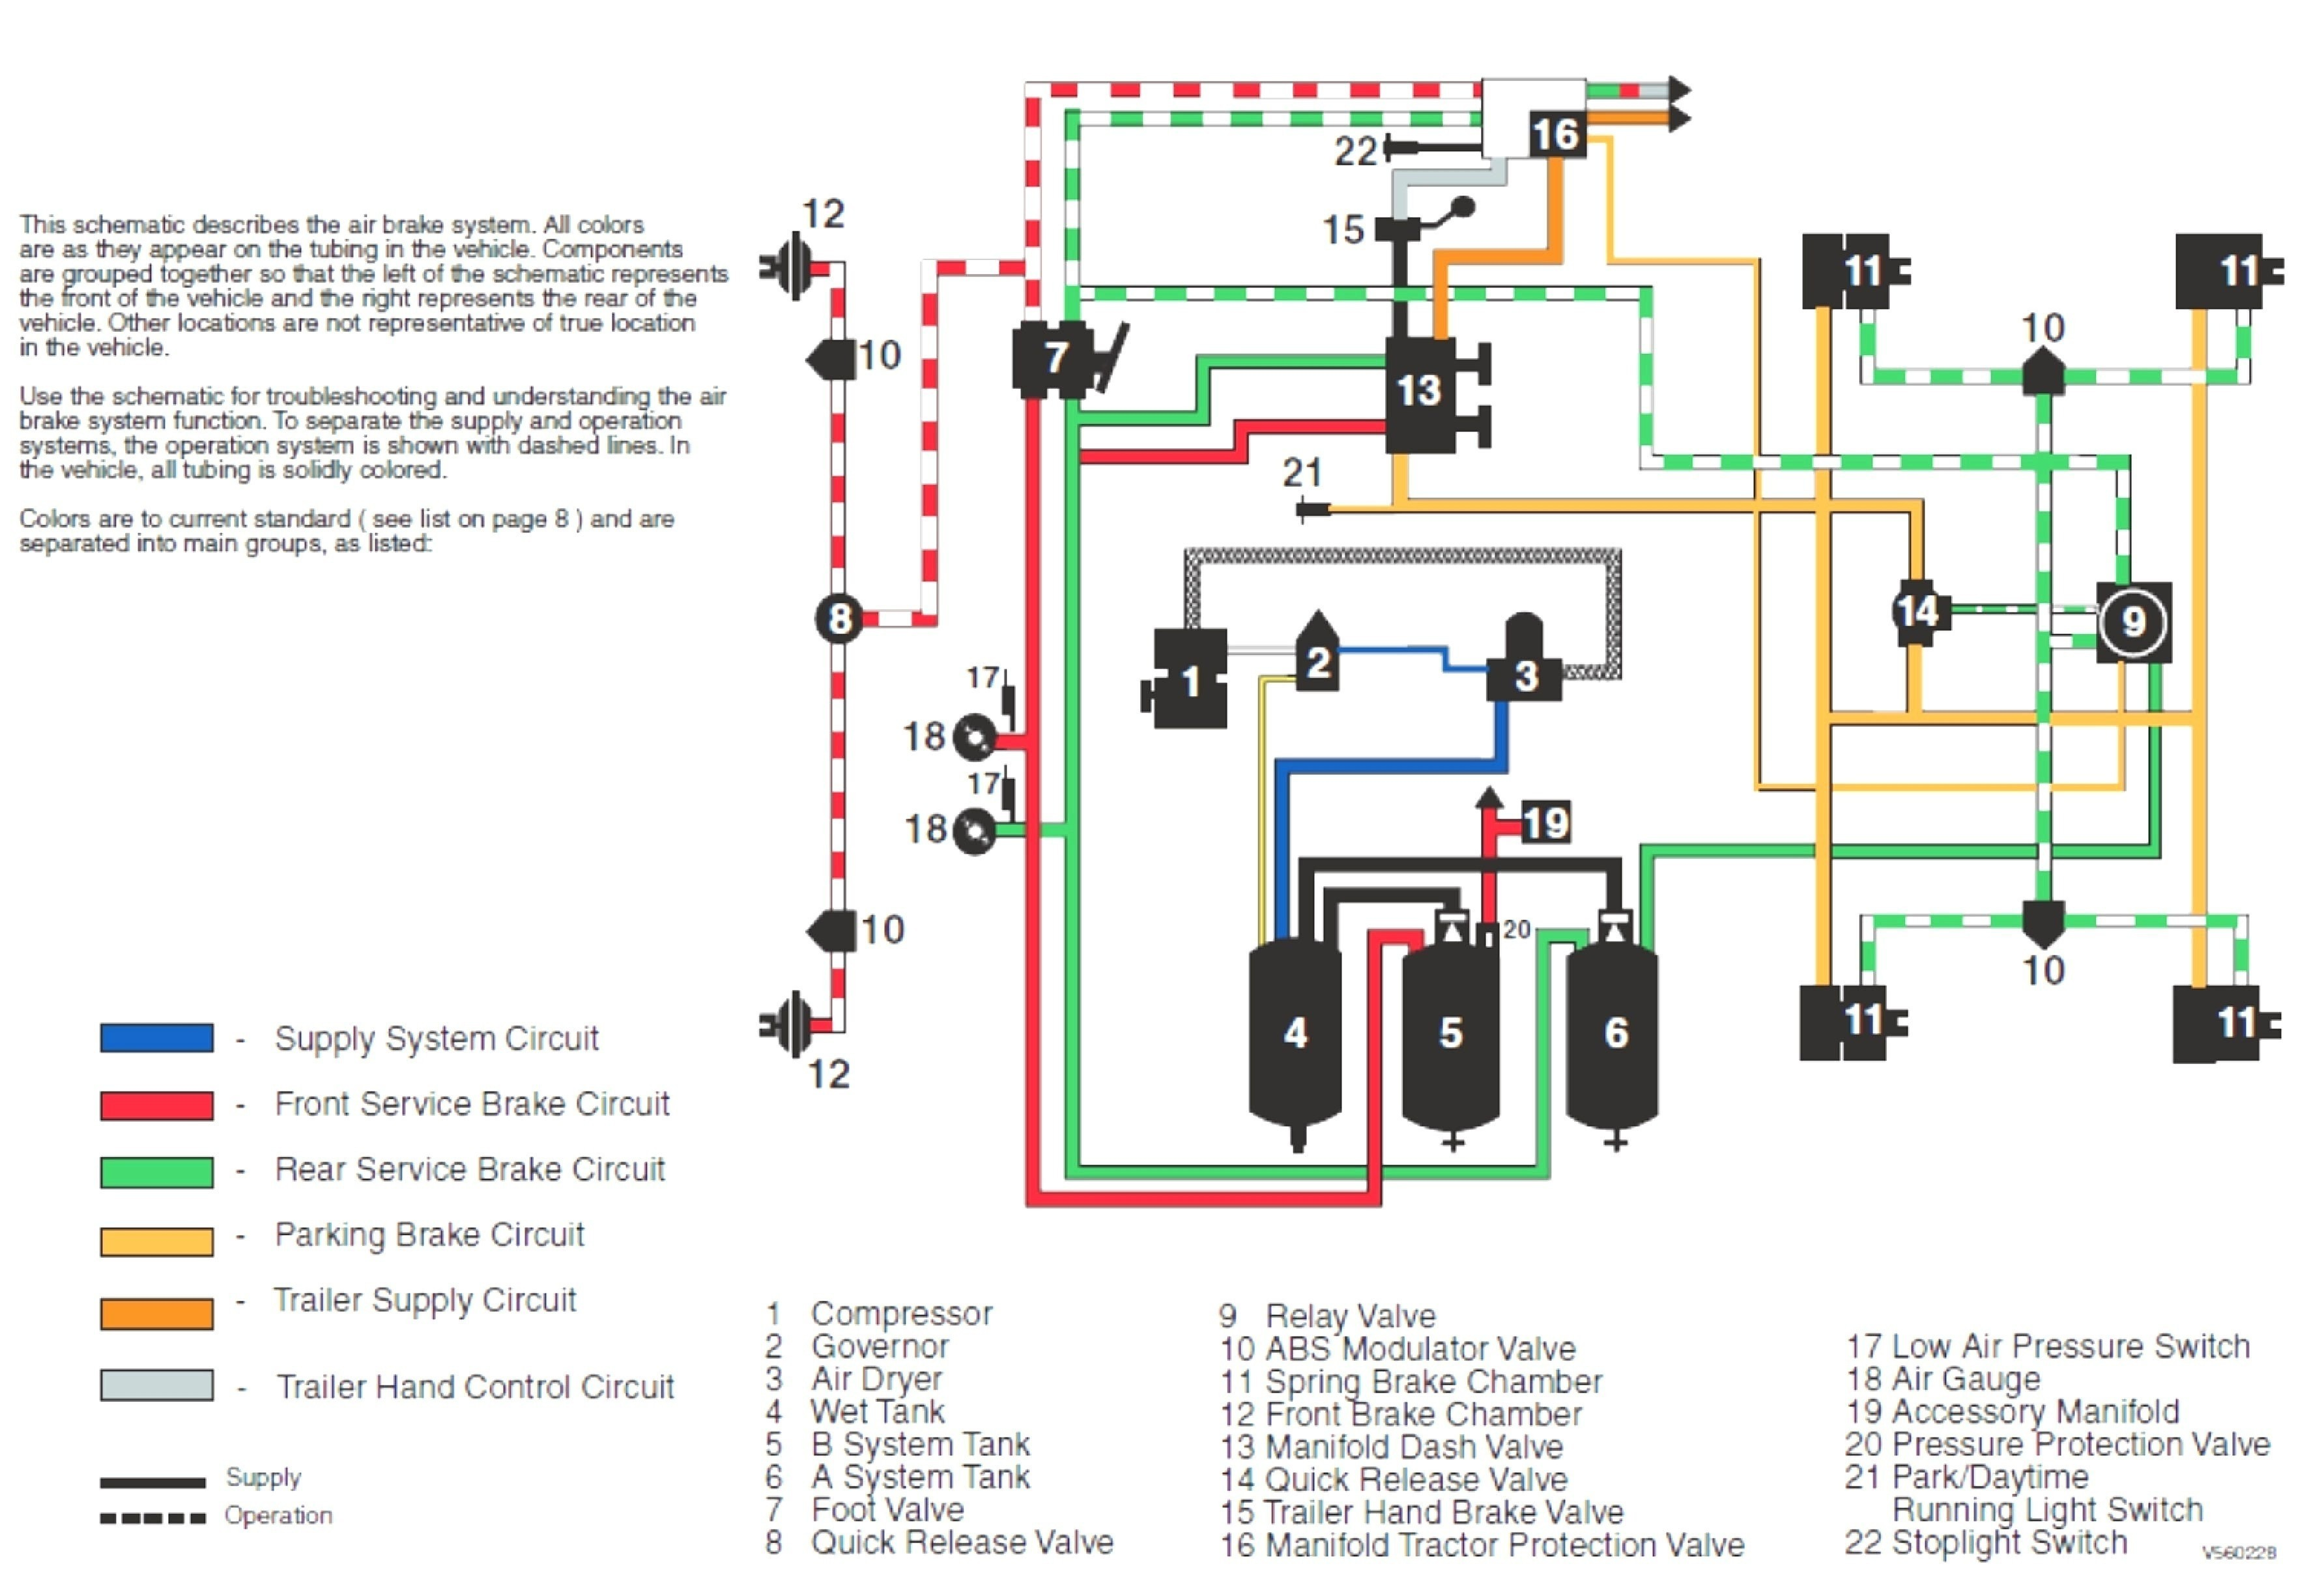 Labeled Car Dashboard Diagram Wiring Diagram for Lights and Switches Valid Peerless Light Switch Of Labeled Car Dashboard Diagram